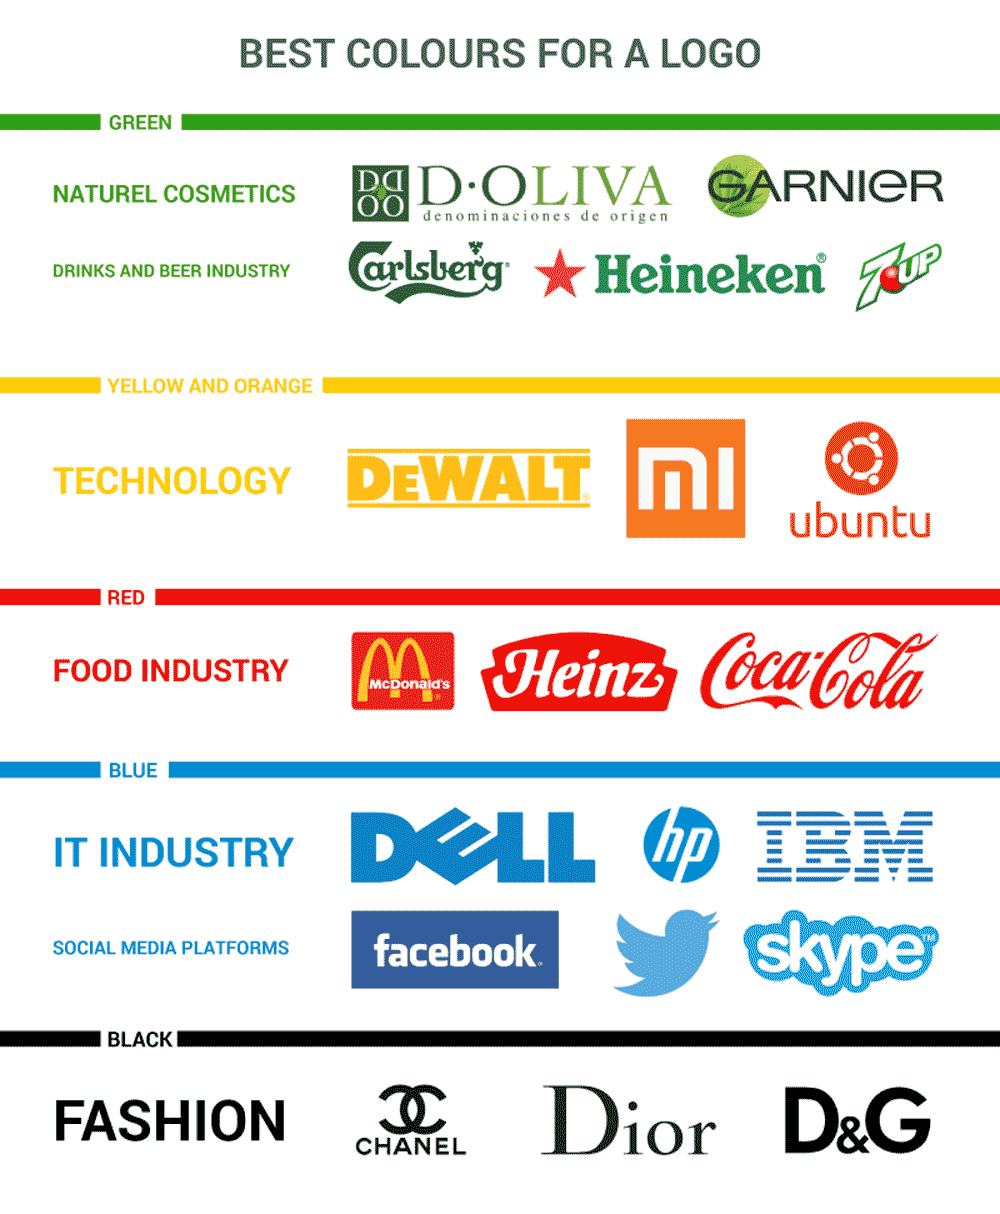 colours-by-industry-branding